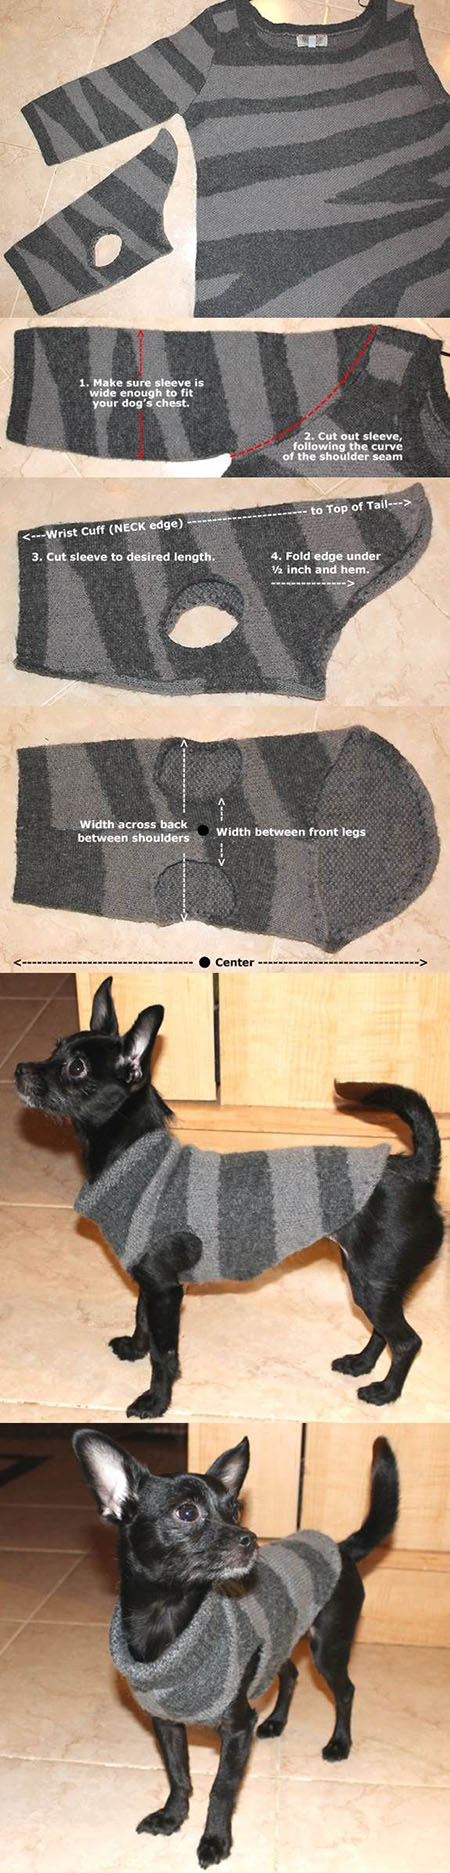 21 DIY Dog Sweater from a Used Sweater 494d048f8